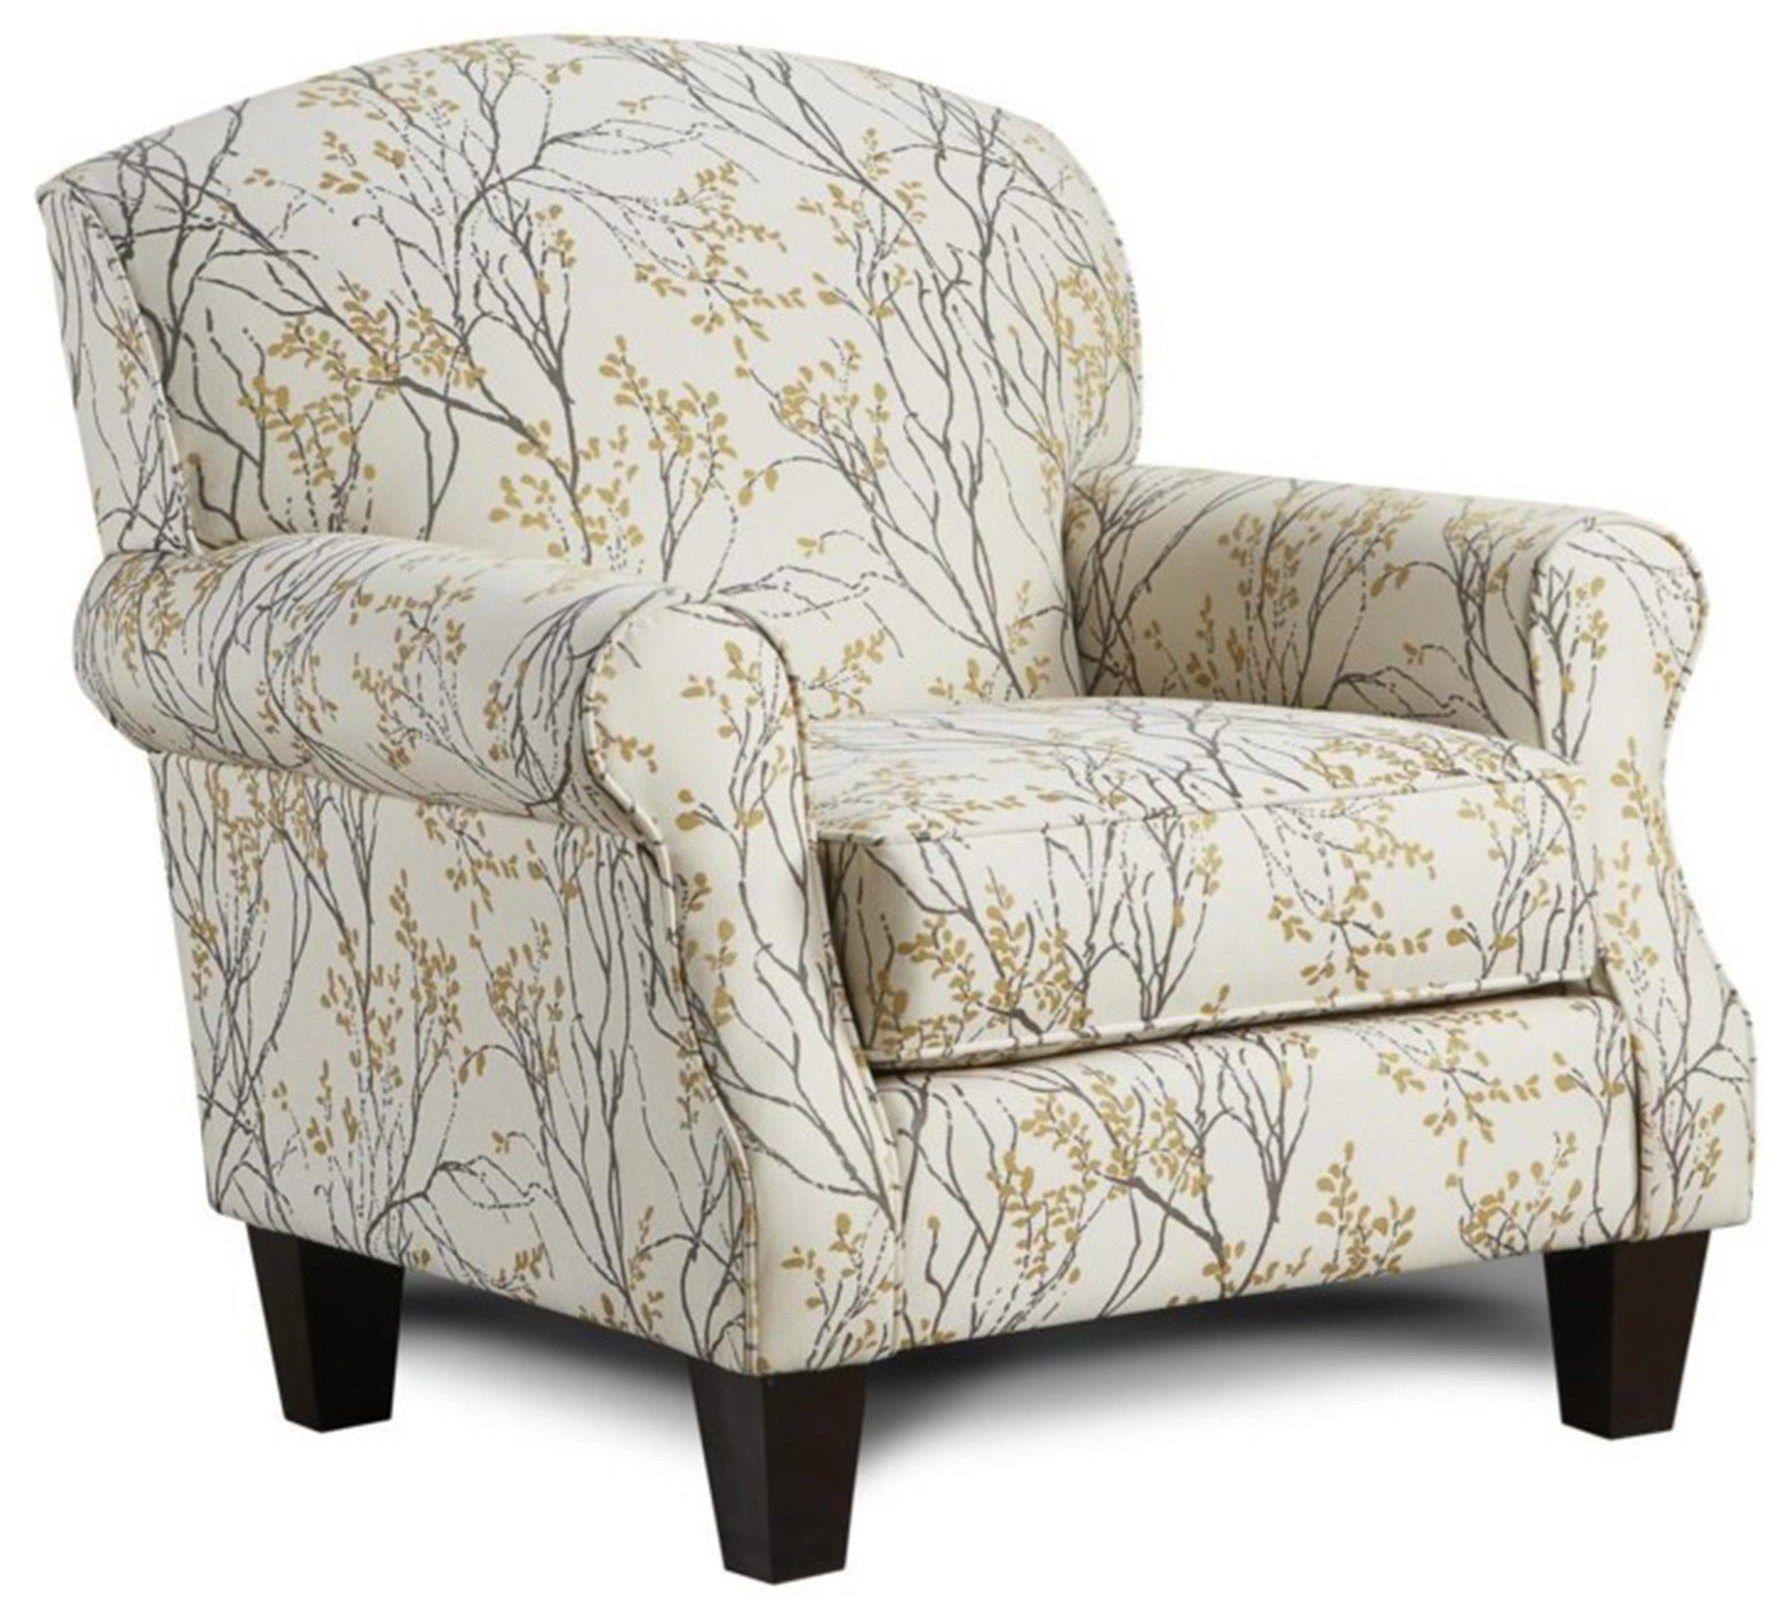 Boho Birch Myla Marigold Accent Chair By Fusion Furniture